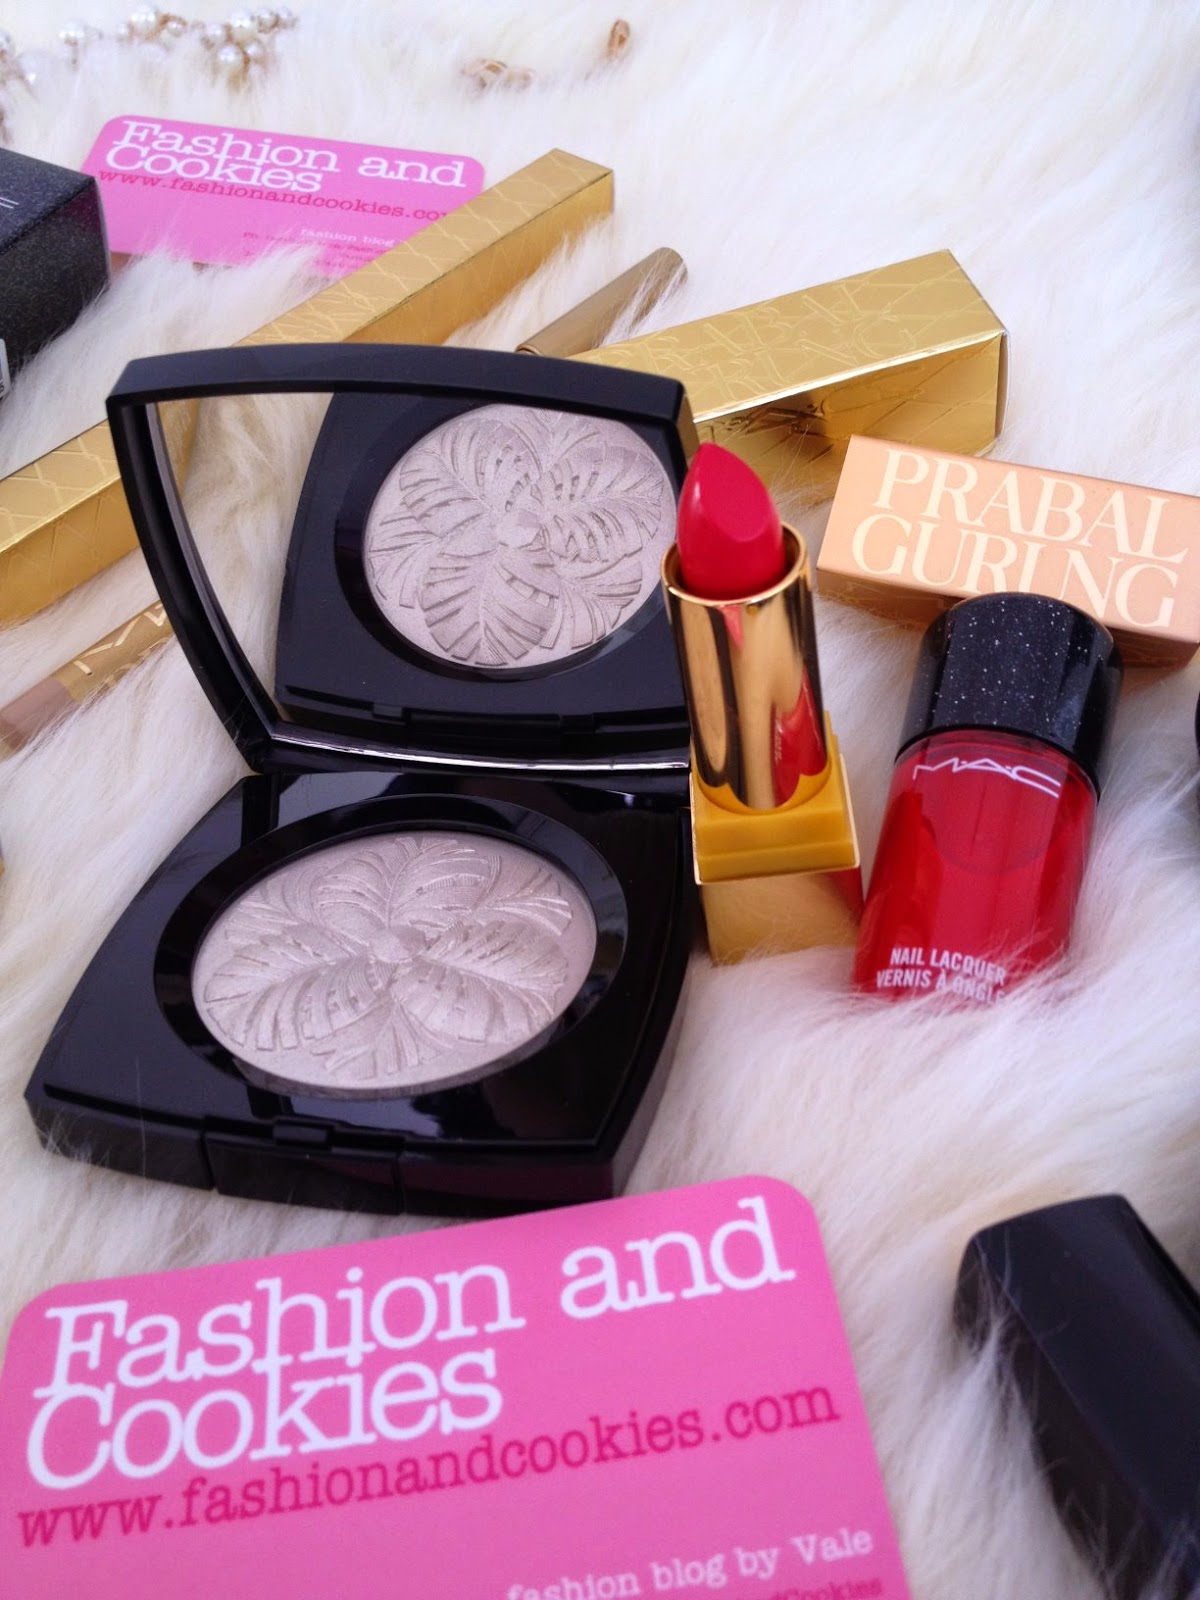 Makeup Holiday 2014 collection, Chanel Plumes precieuses makeup, Chanel Camelia d Plumes, Fashion and Cookies, fashion blogger